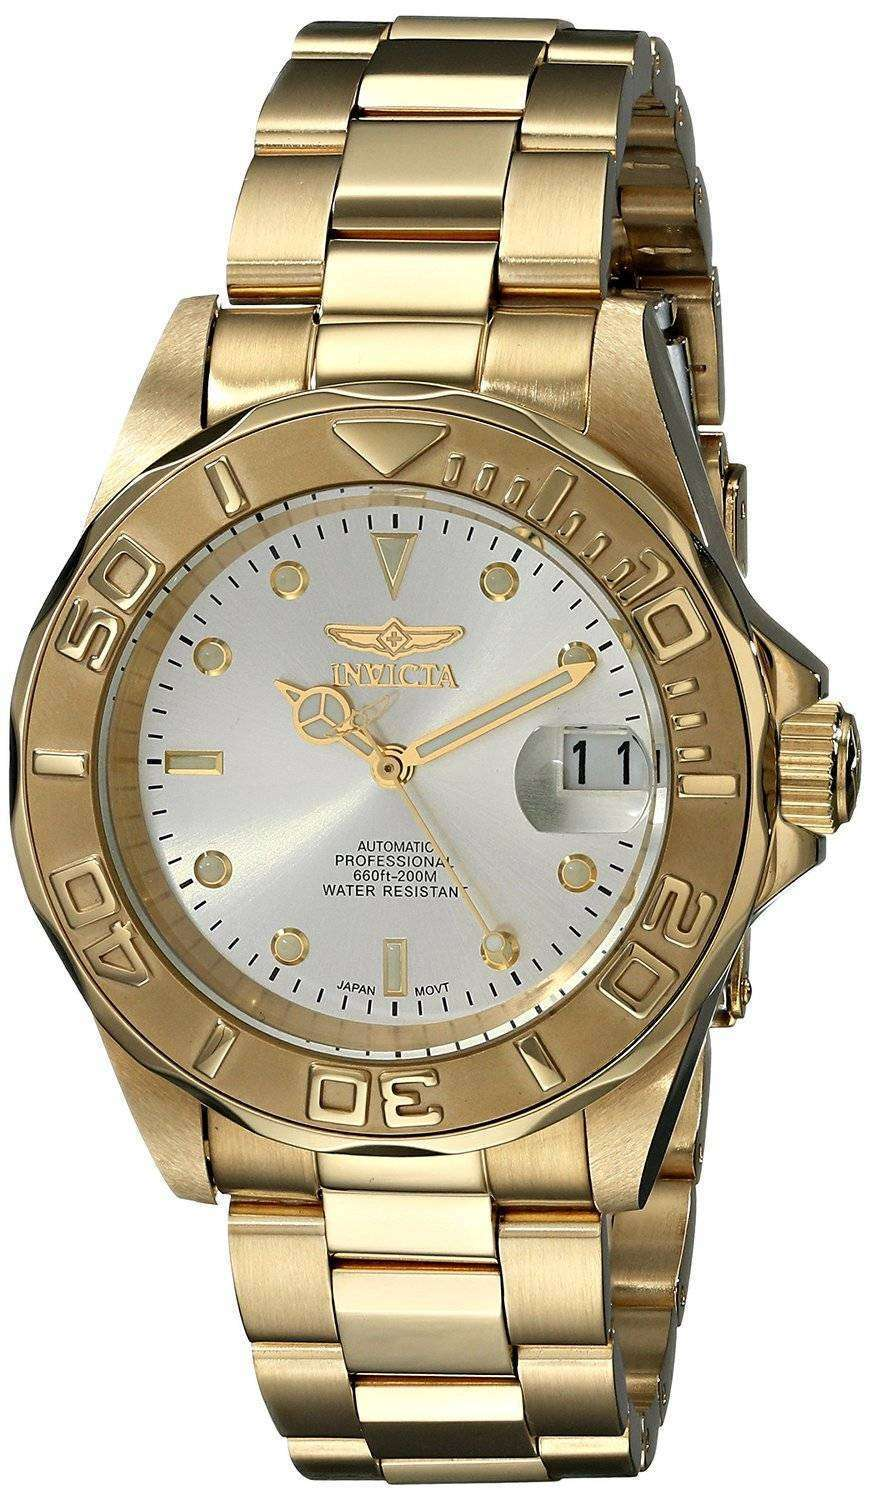 Invicta Pro Driver Automatic Gold Dial INV9010 9010 Mens Watch ... 16c7701b8c